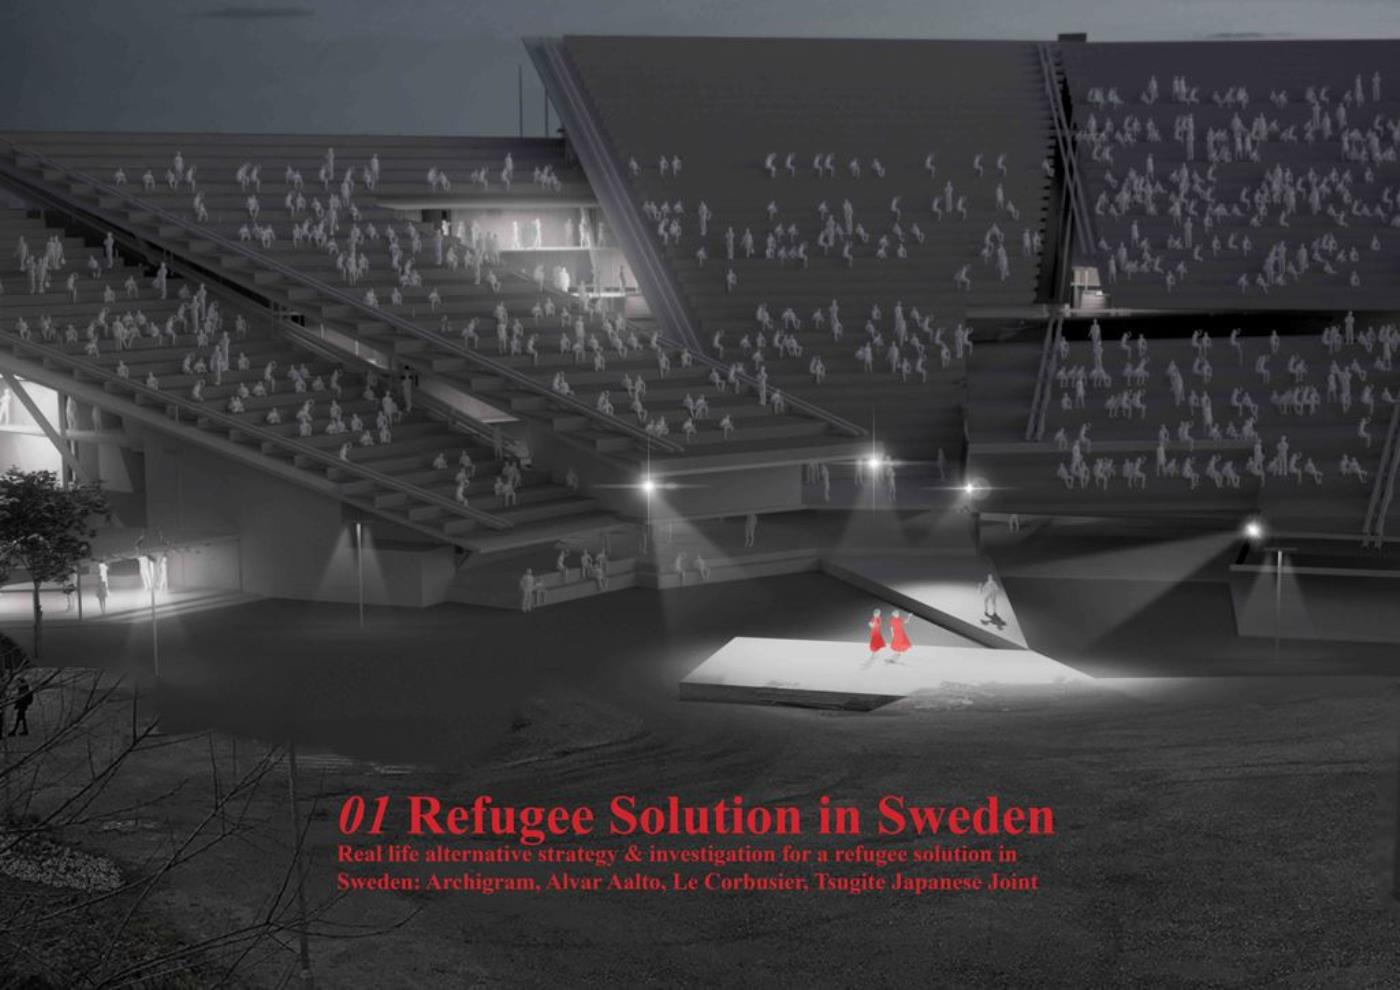 Refugees Solution in Sweden